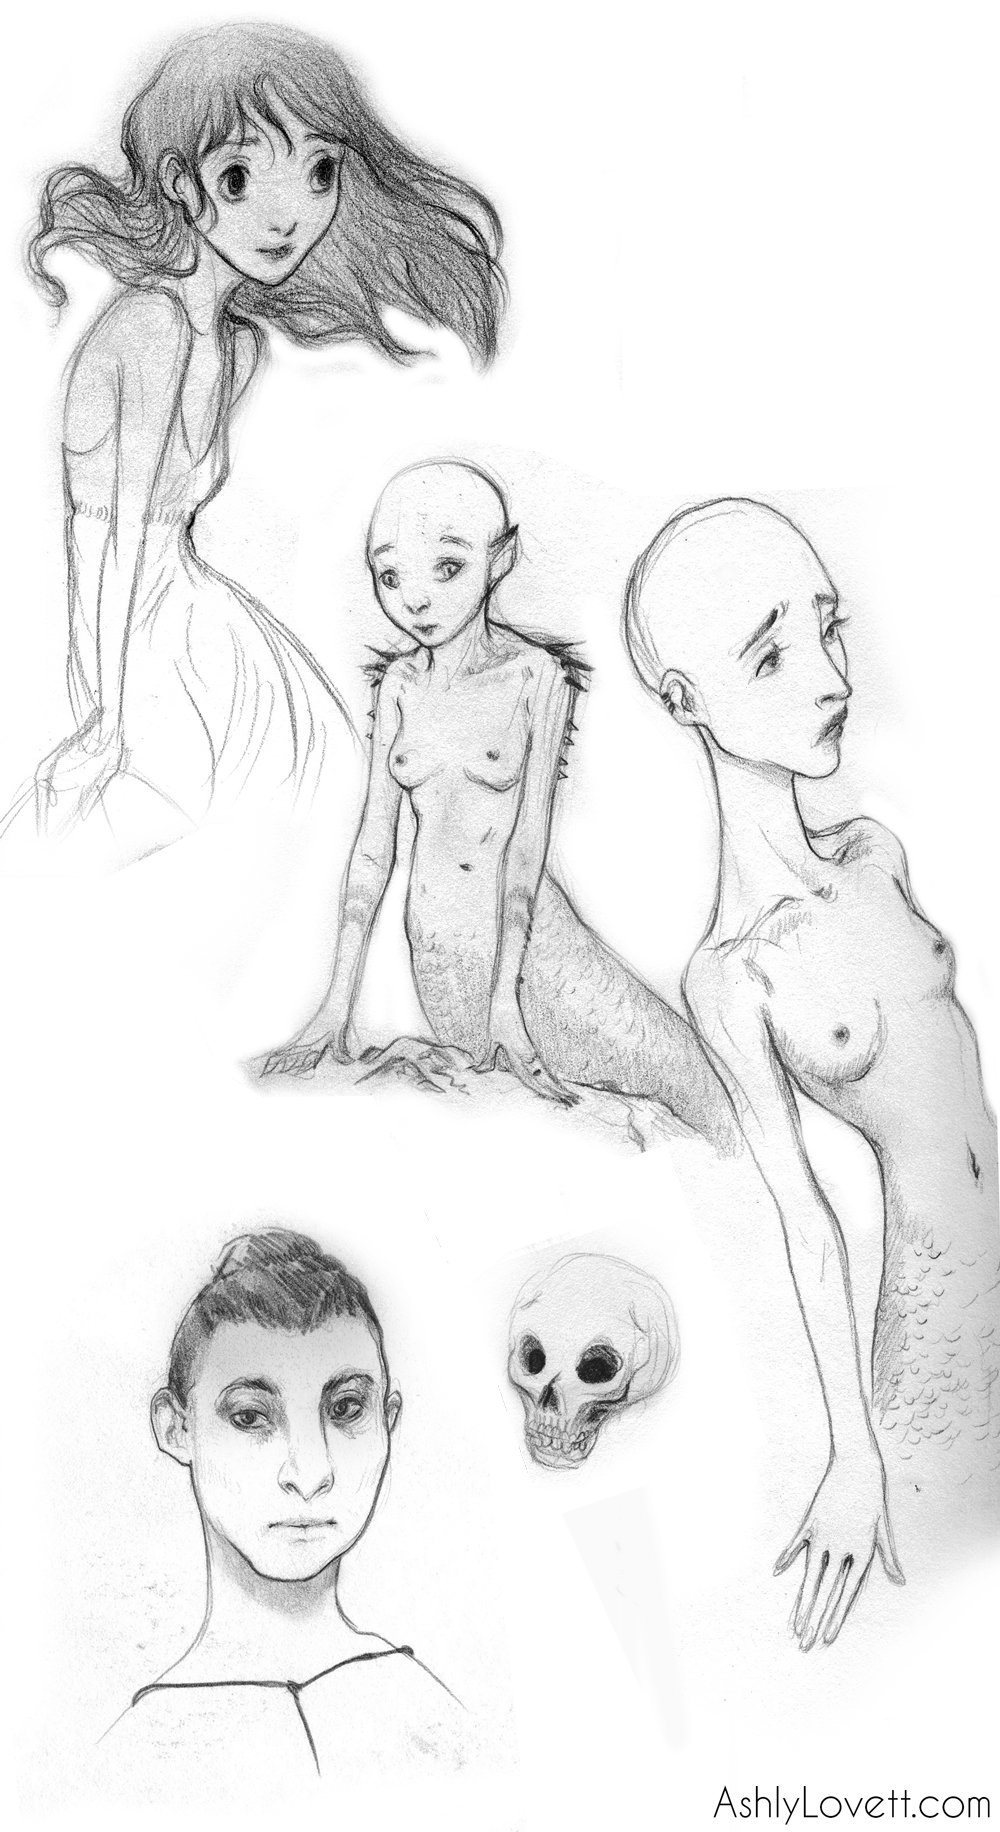 AshlyLovett-Sketches3.jpg